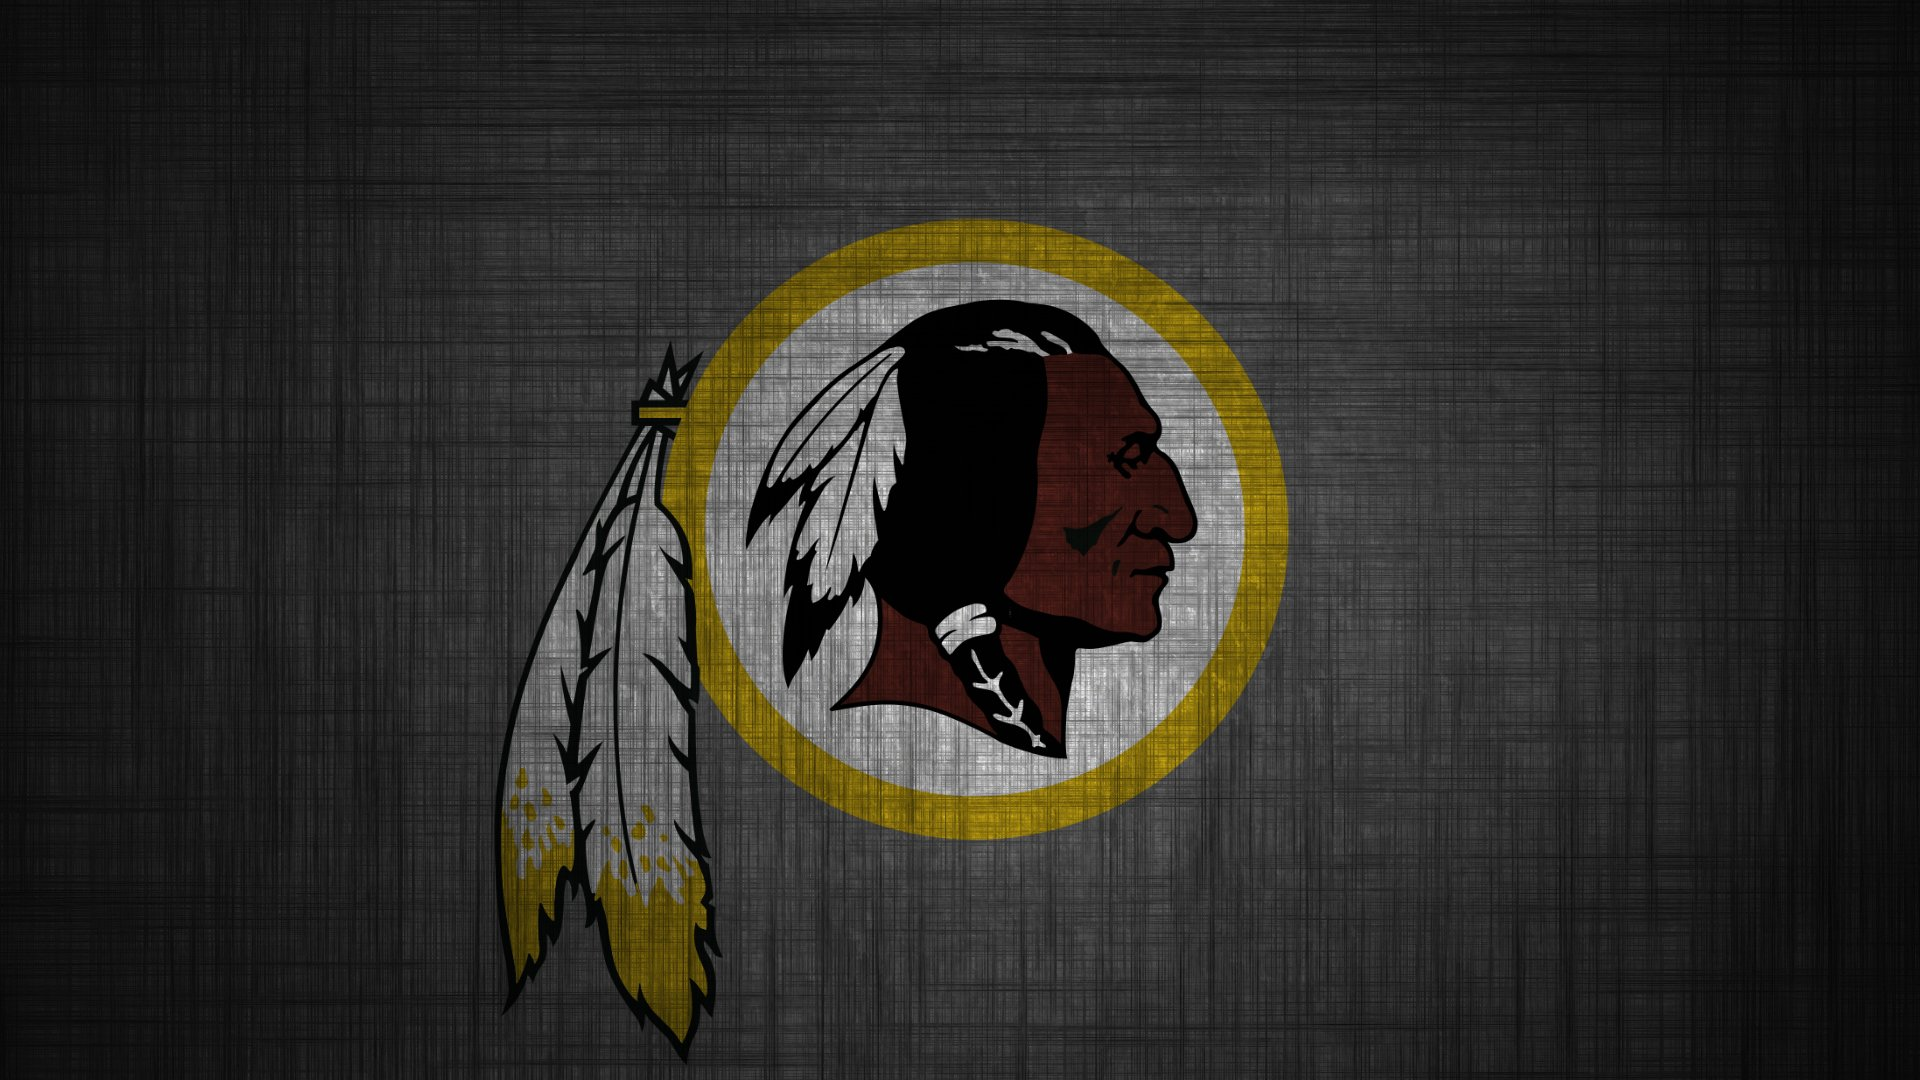 The Washington Redskins are a professional American football team based in the Washington metropolitan area The Redskins compete in the National Football League NFL